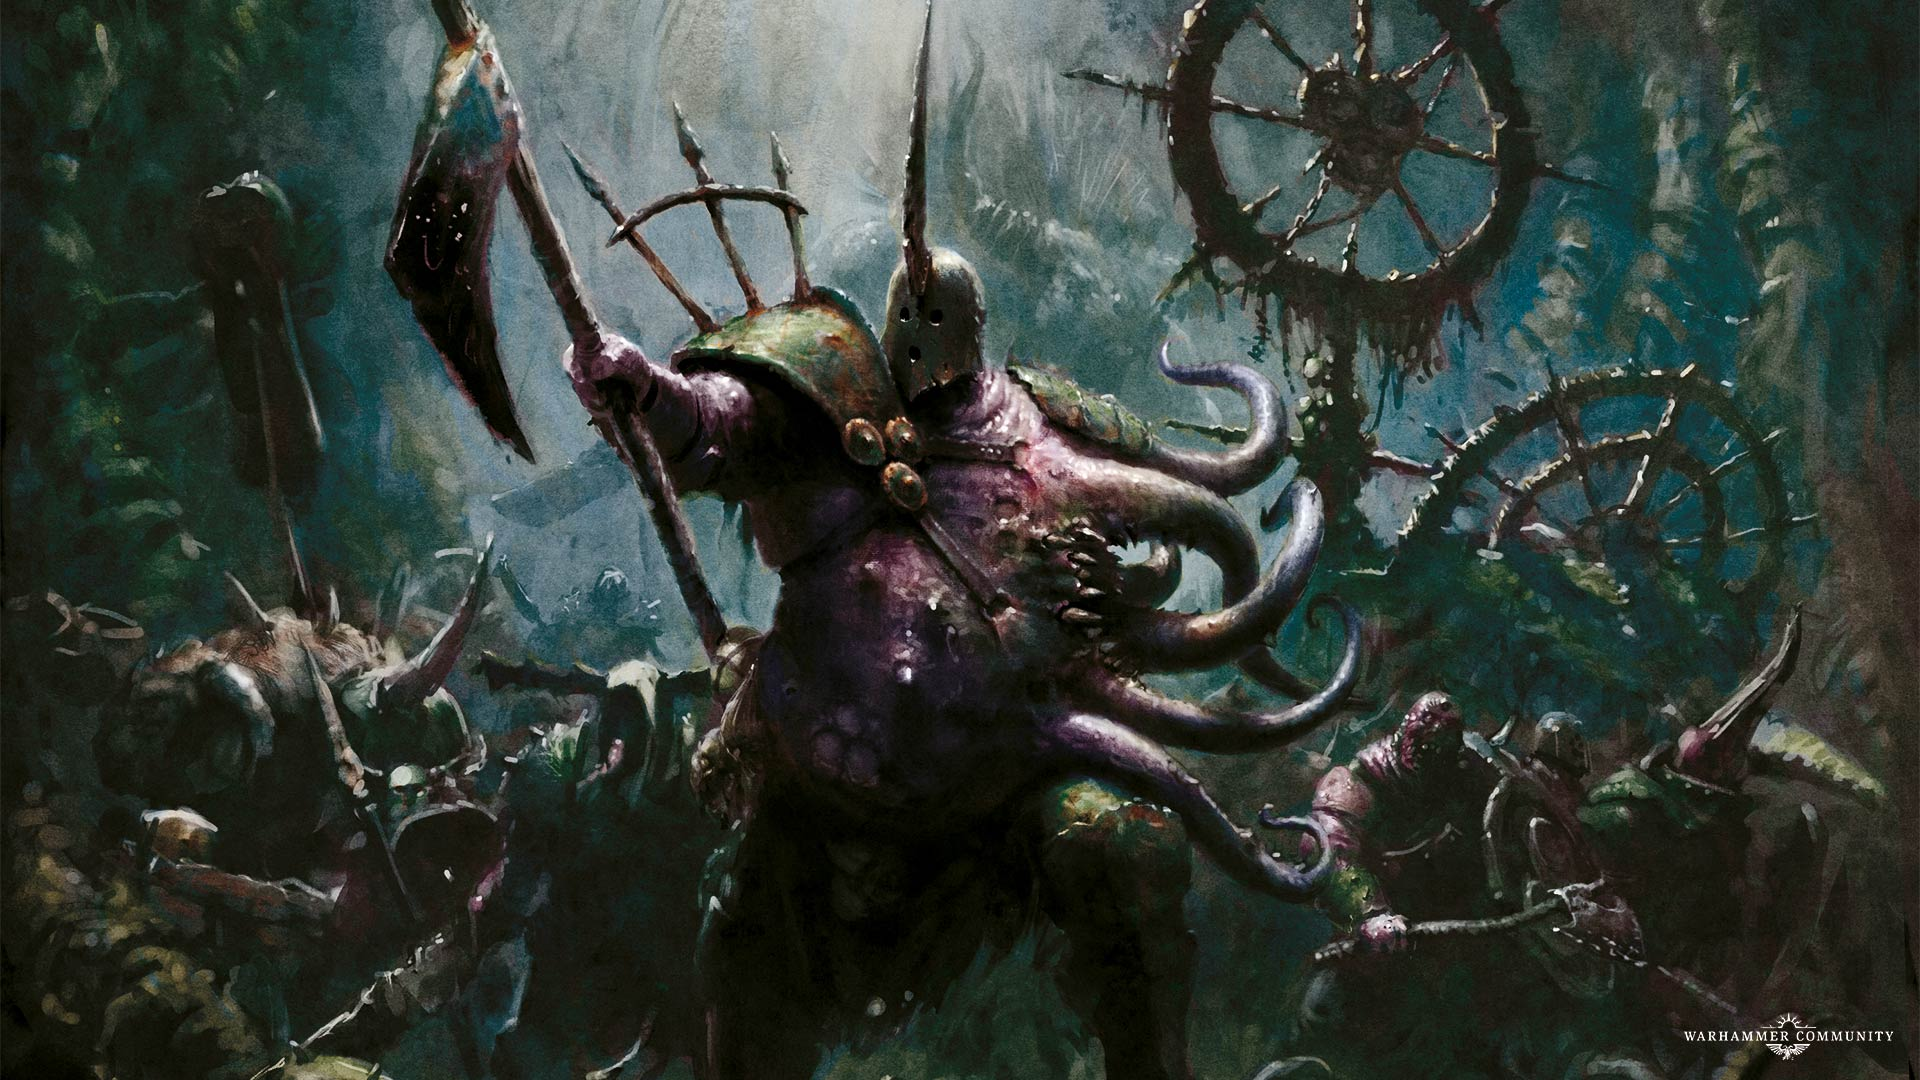 The Fourth Day Of Nurgle The Lord Of Blights Warhammer Community